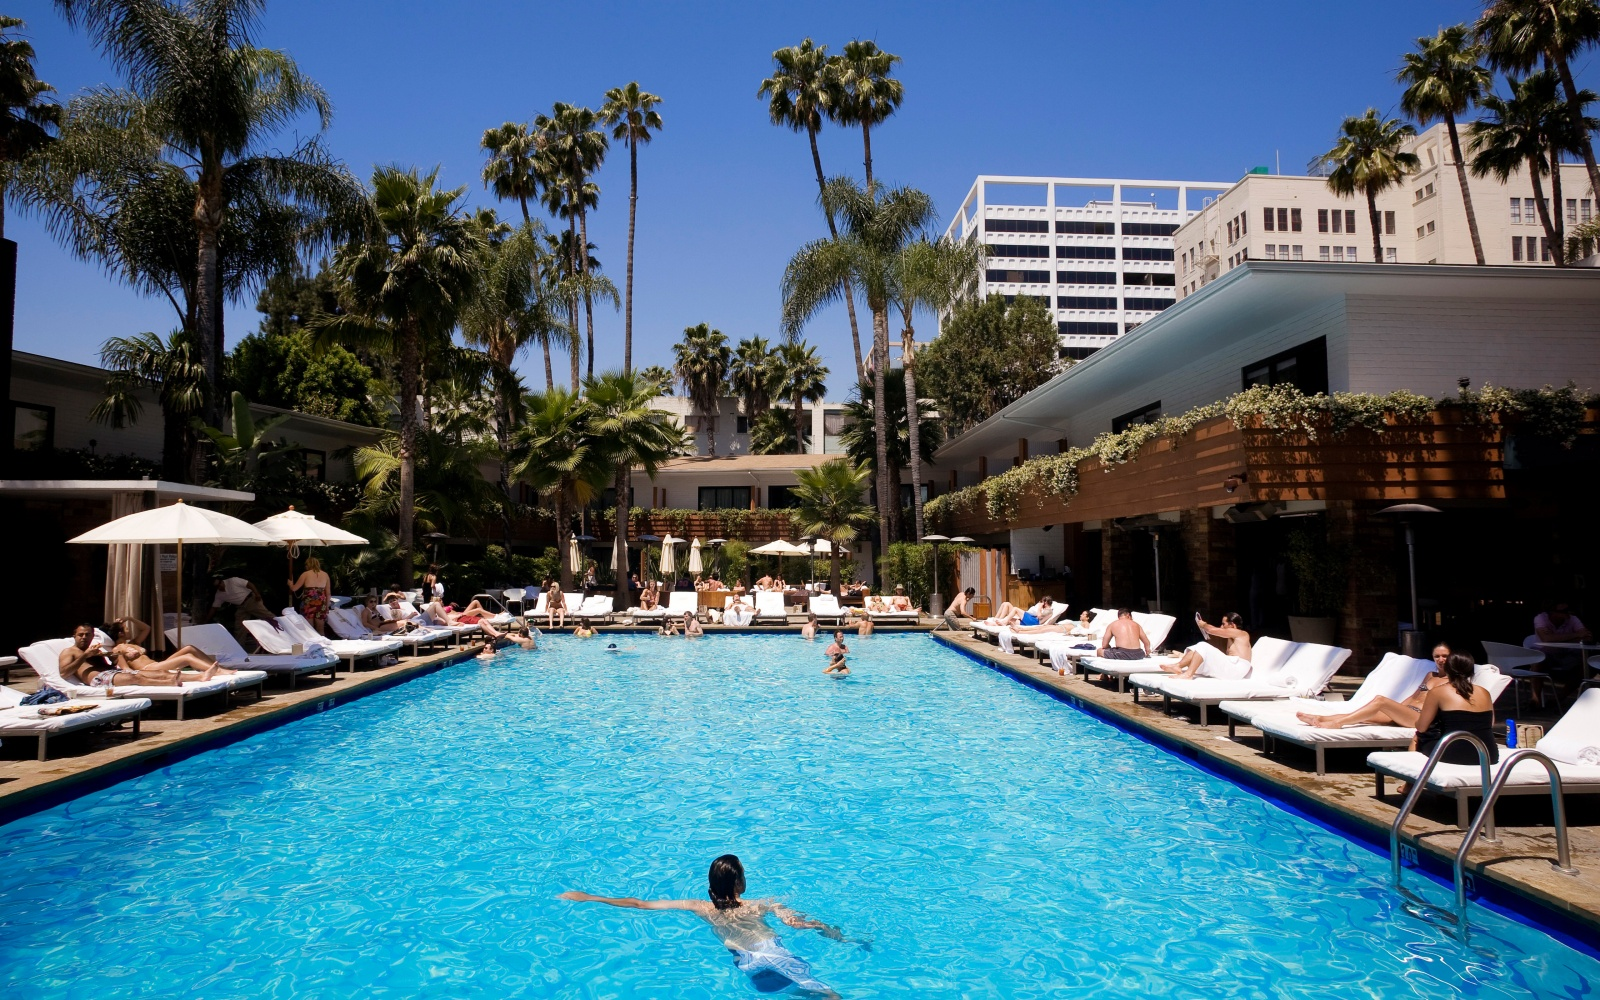 Flamingo Las Vegas Kid Pool Best Hotel Pools In Los Angeles Travel 43 Leisure